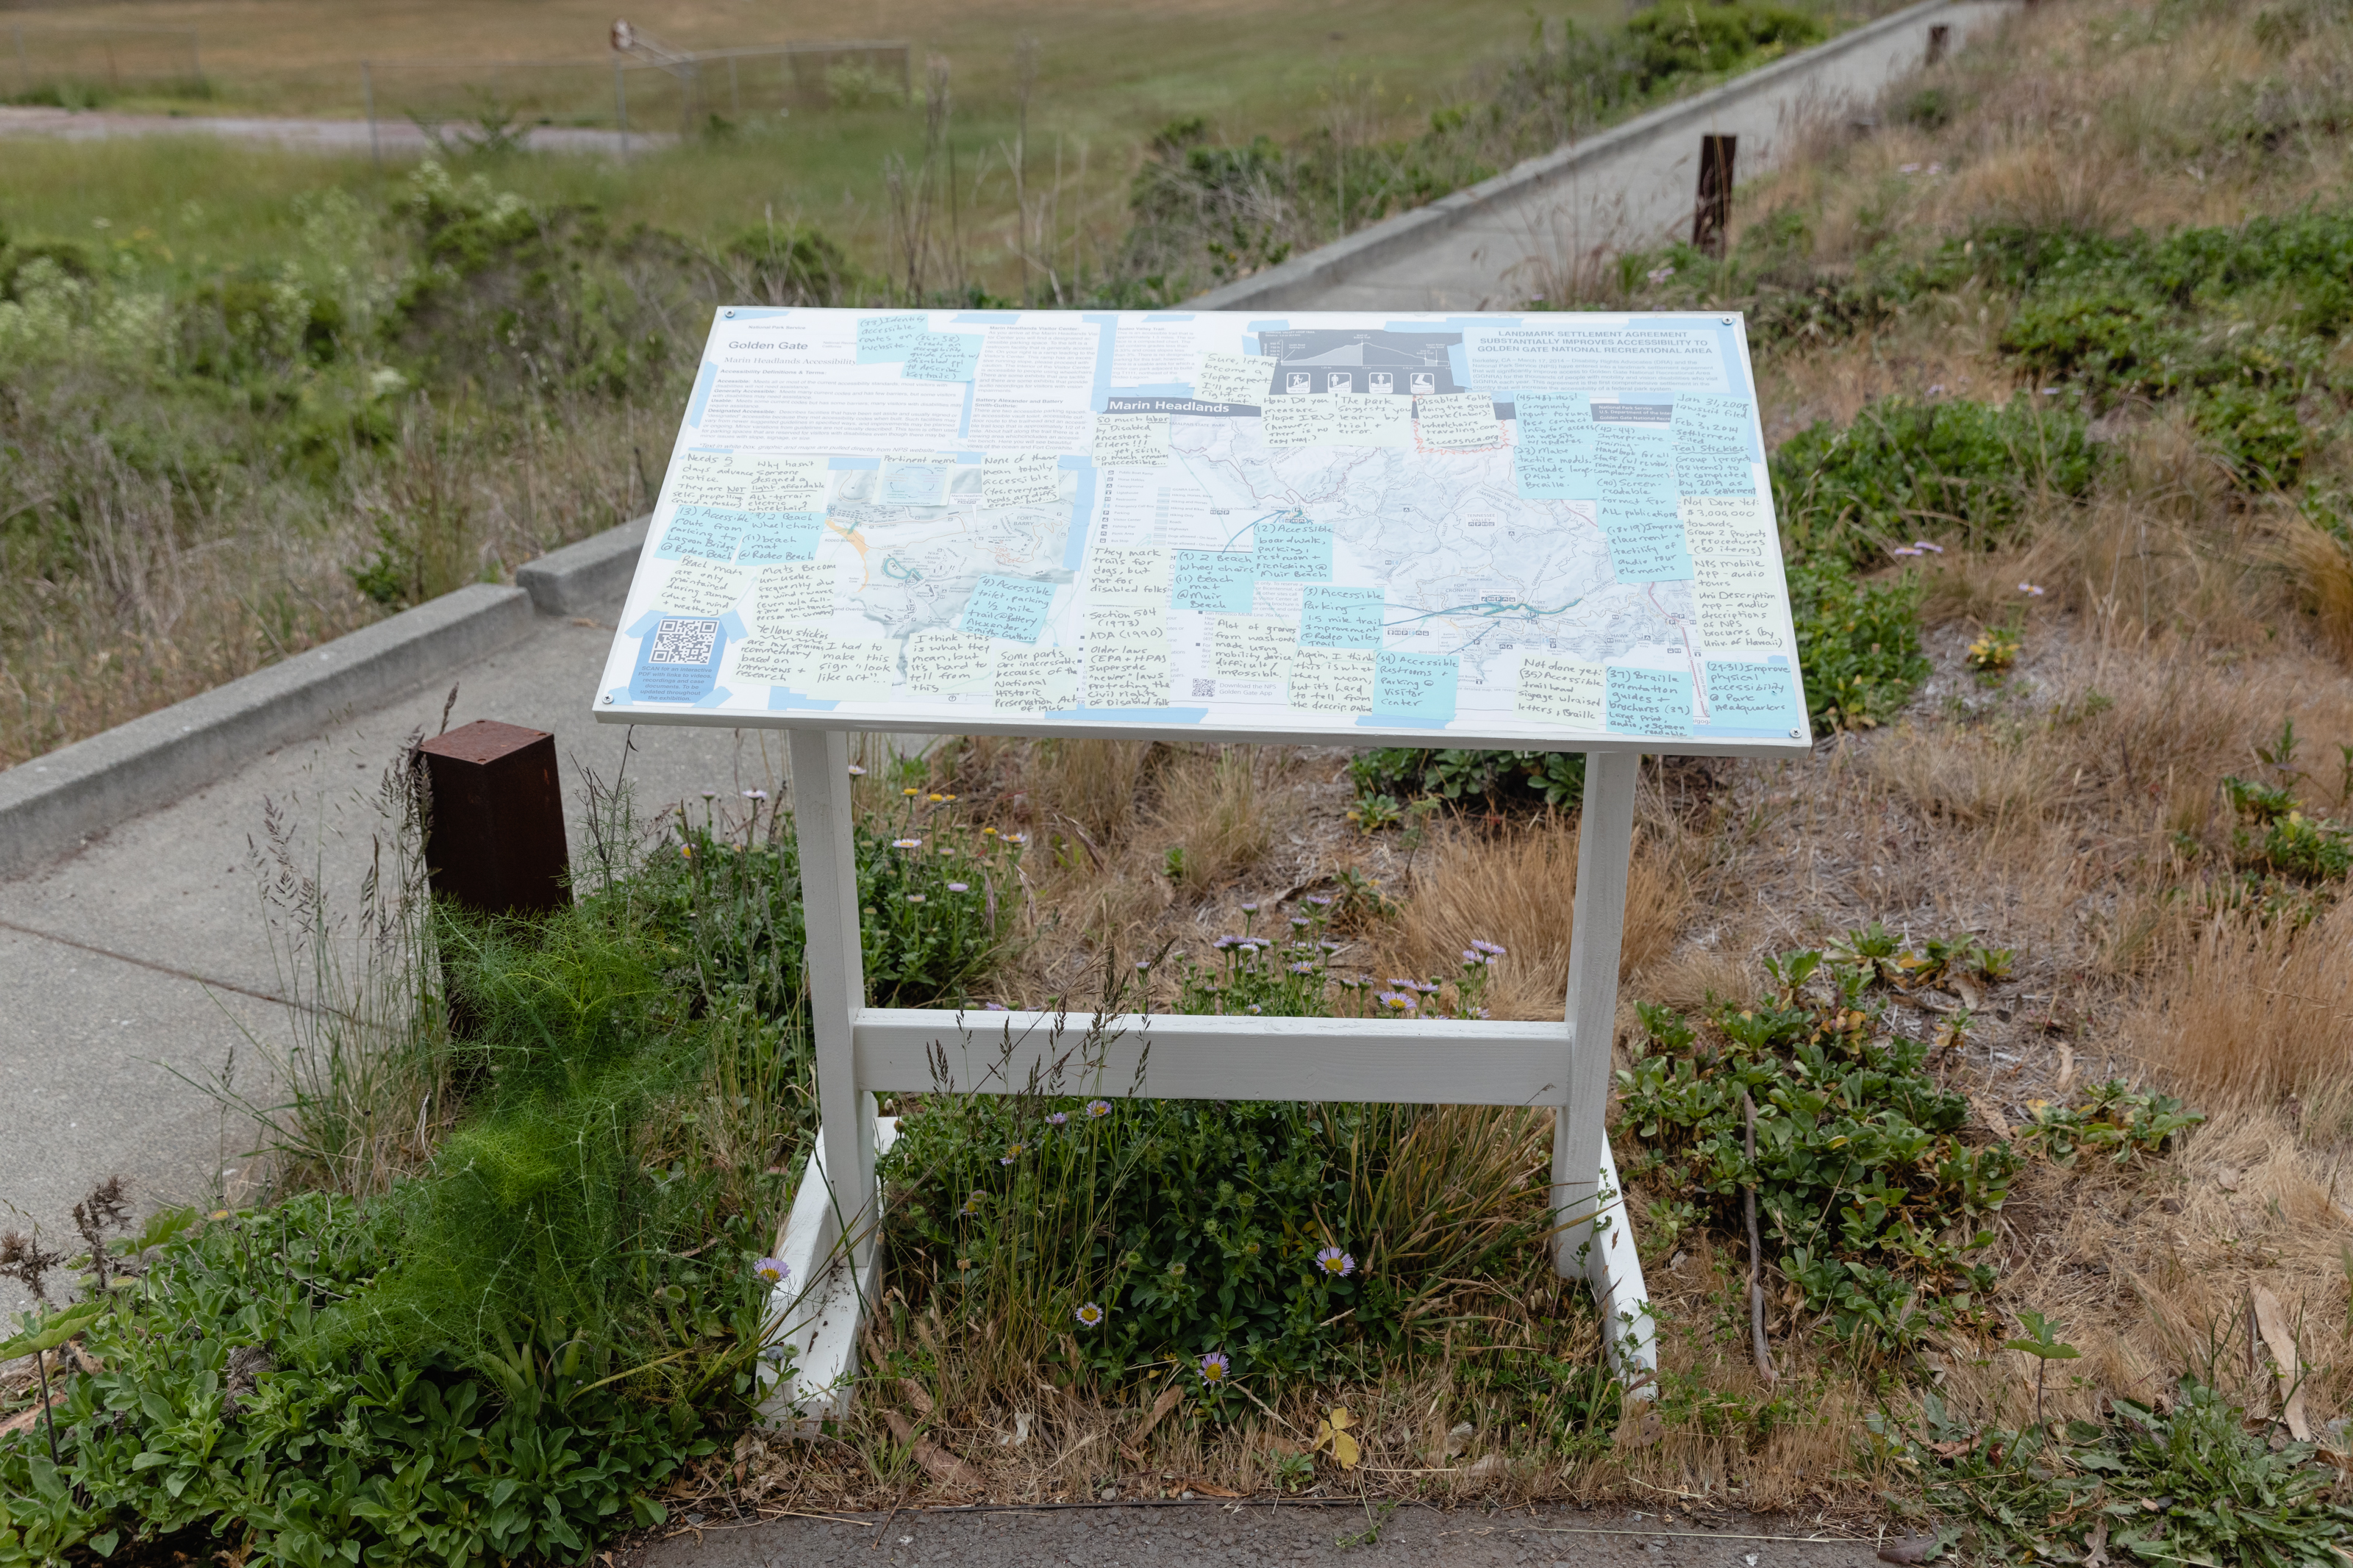 107_Headlands-Center-for-the-Arts052321_AndriaLo